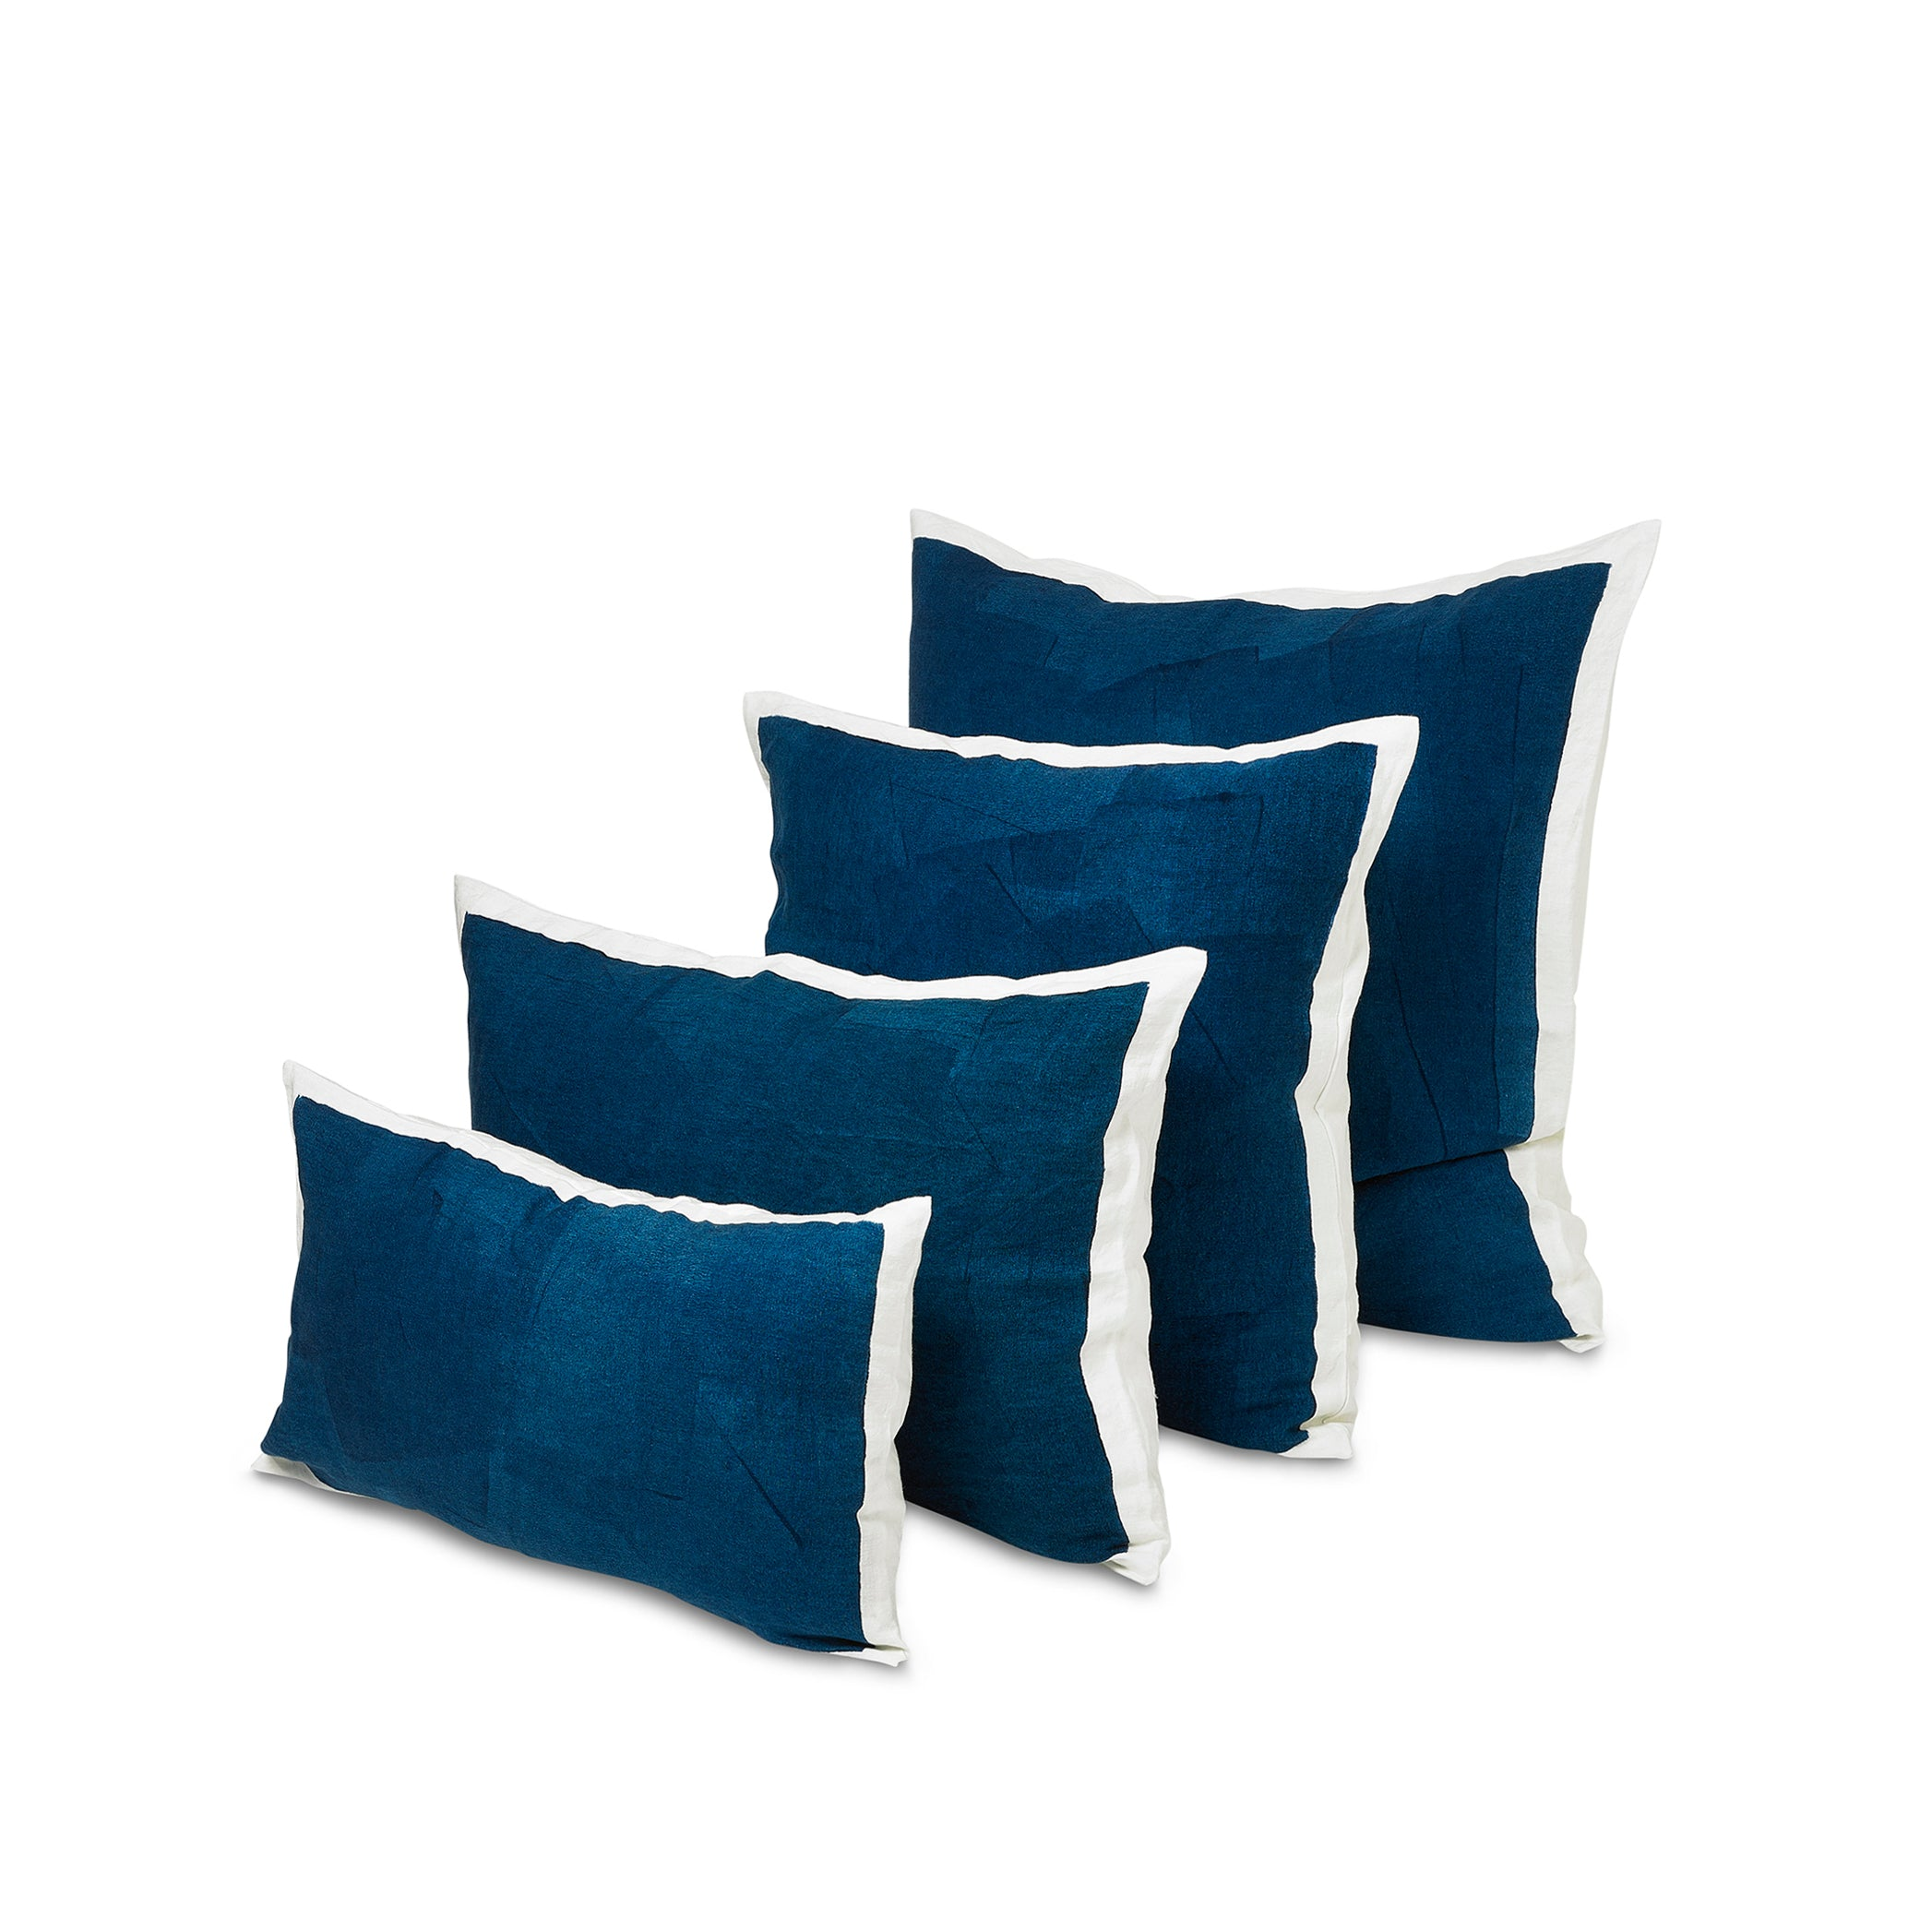 Hand Painted Linen Cushion in Midnight Blue, 60cm x 60cm